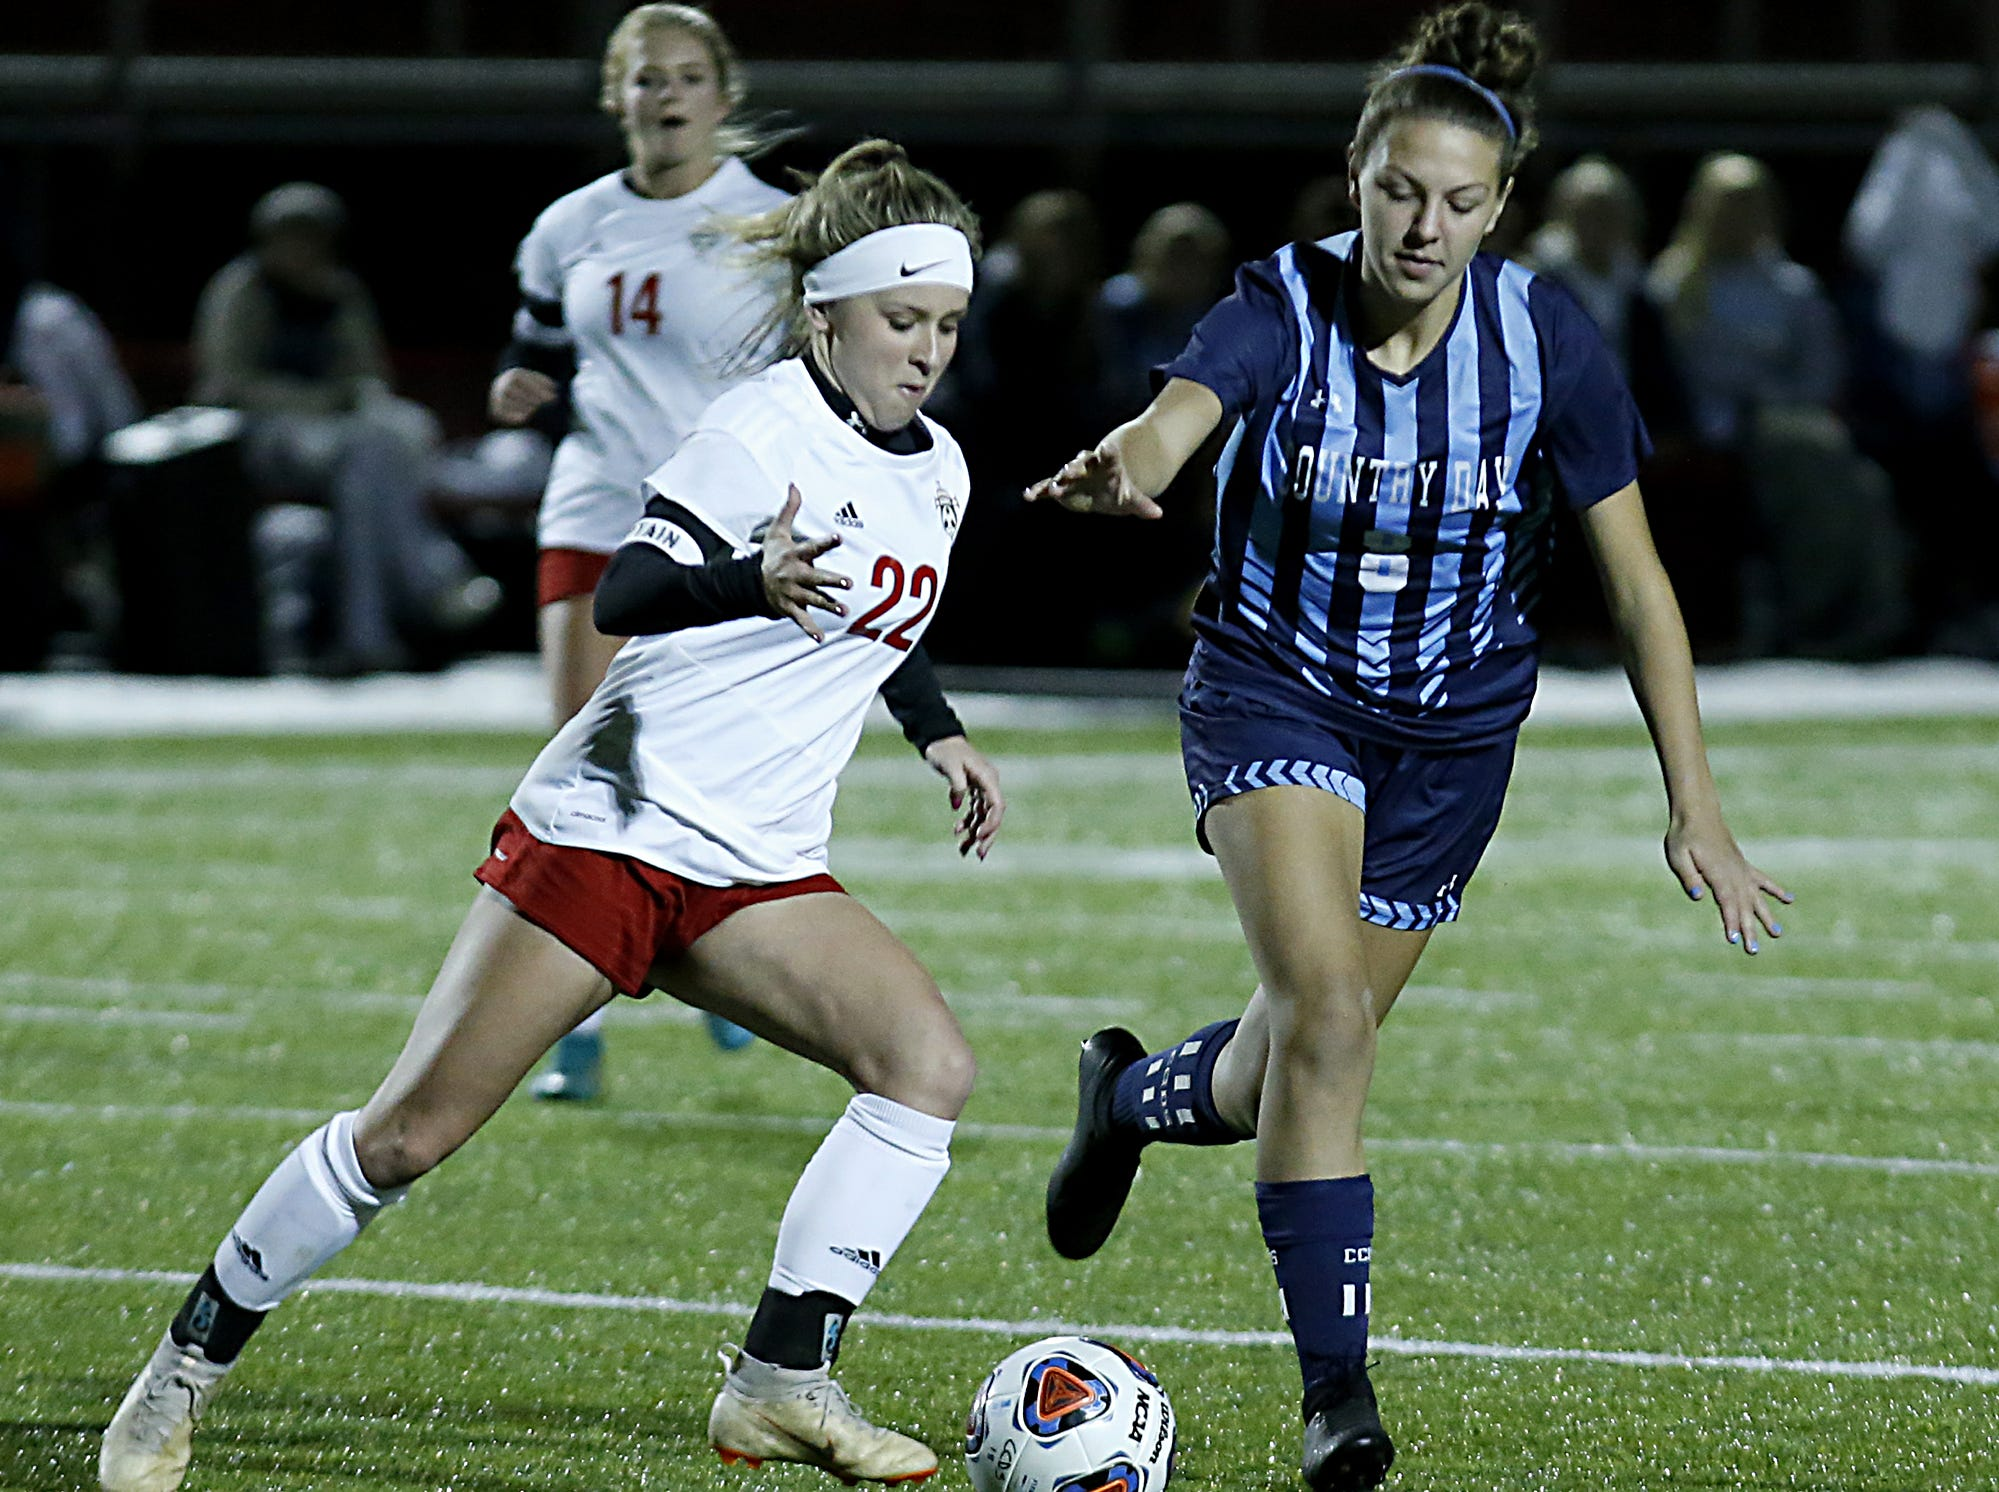 Cincinnati Country Day defender Emma Robinson pursues Bishop Rosecrans midfielder Claire Creeks during their girls division III state semifinal at London Tuesday, Nov. 6, 2018.